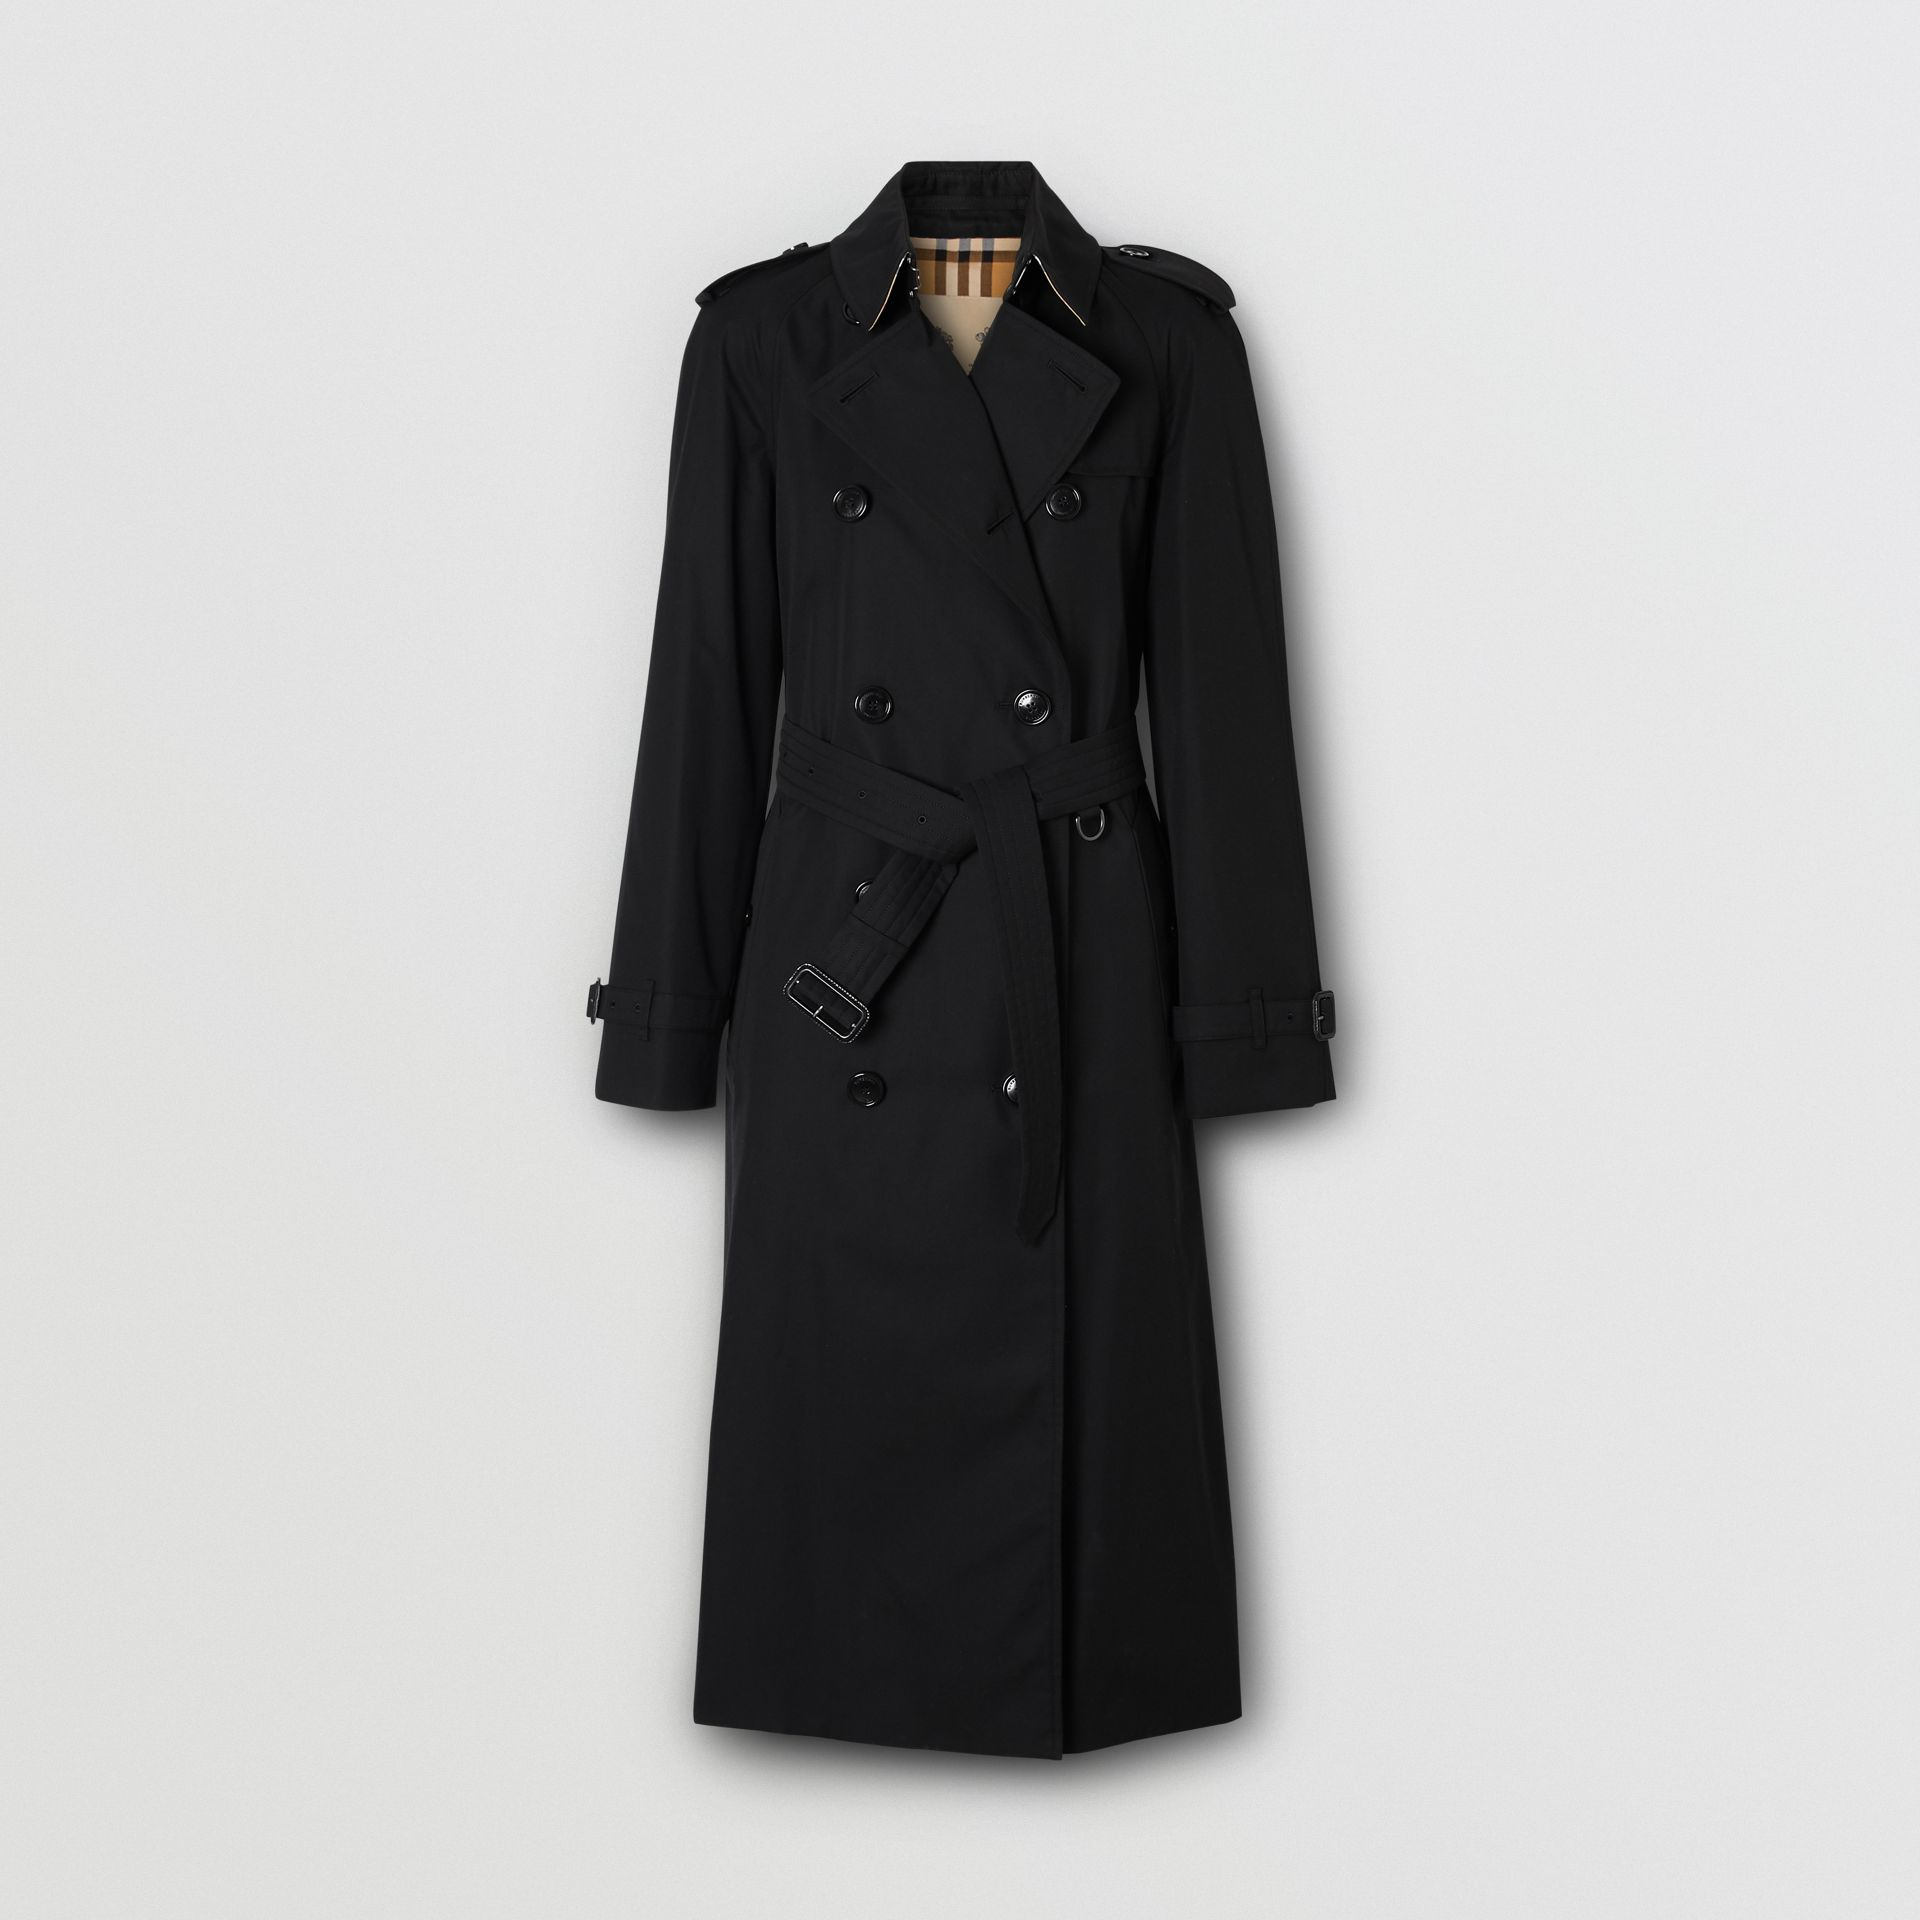 Langer Heritage-Trenchcoat in Waterloo-Passform (Schwarz) - Damen | Burberry - Galerie-Bild 3